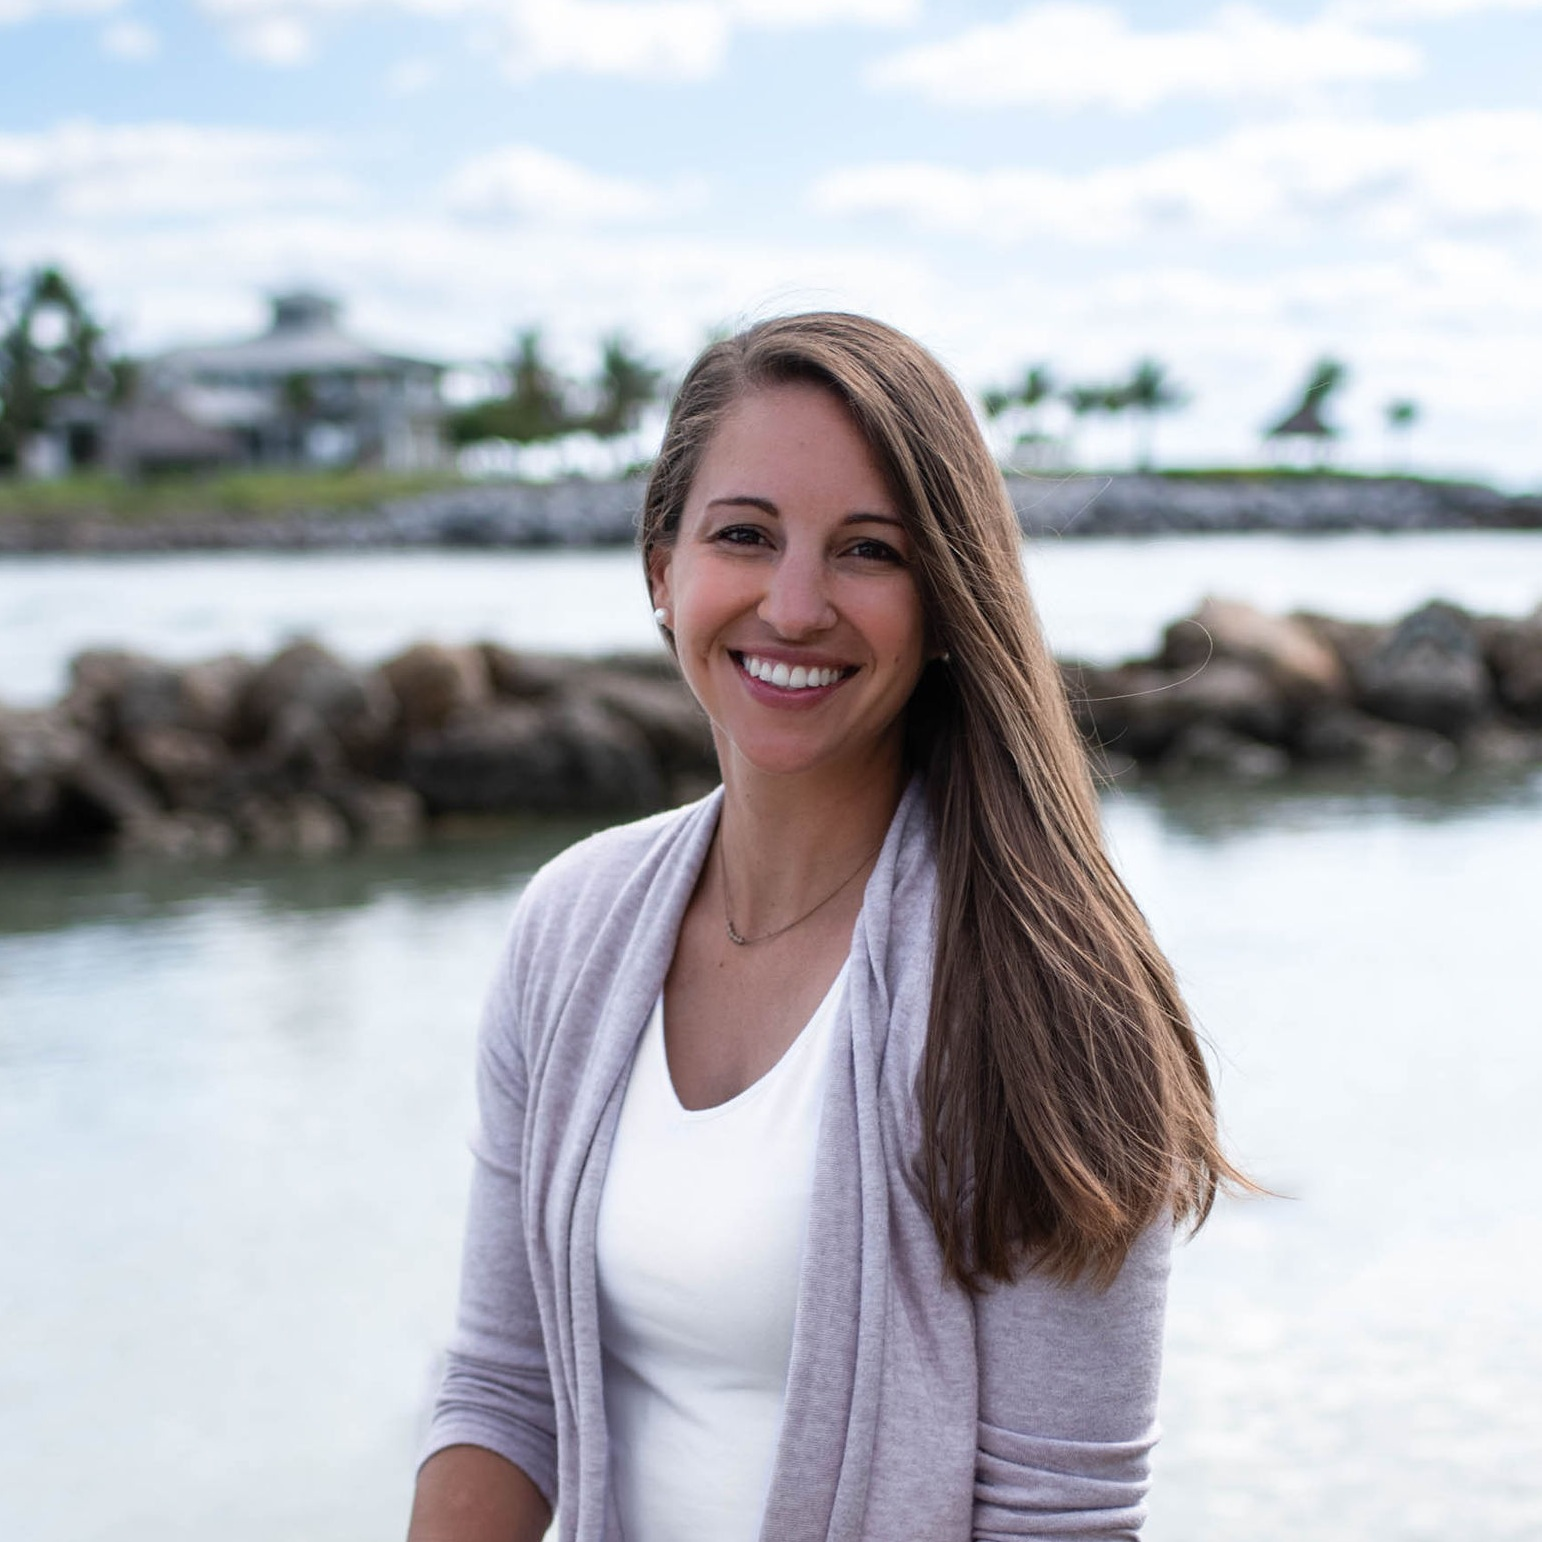 I'm a Chicagoland native based out of Jupiter, Florida. I'd love to work with you to create a website that you'll love and be proud to share. Whether you have an established business already or are just getting started, I'm here to build you a website that meets all of your needs. - -Lauren